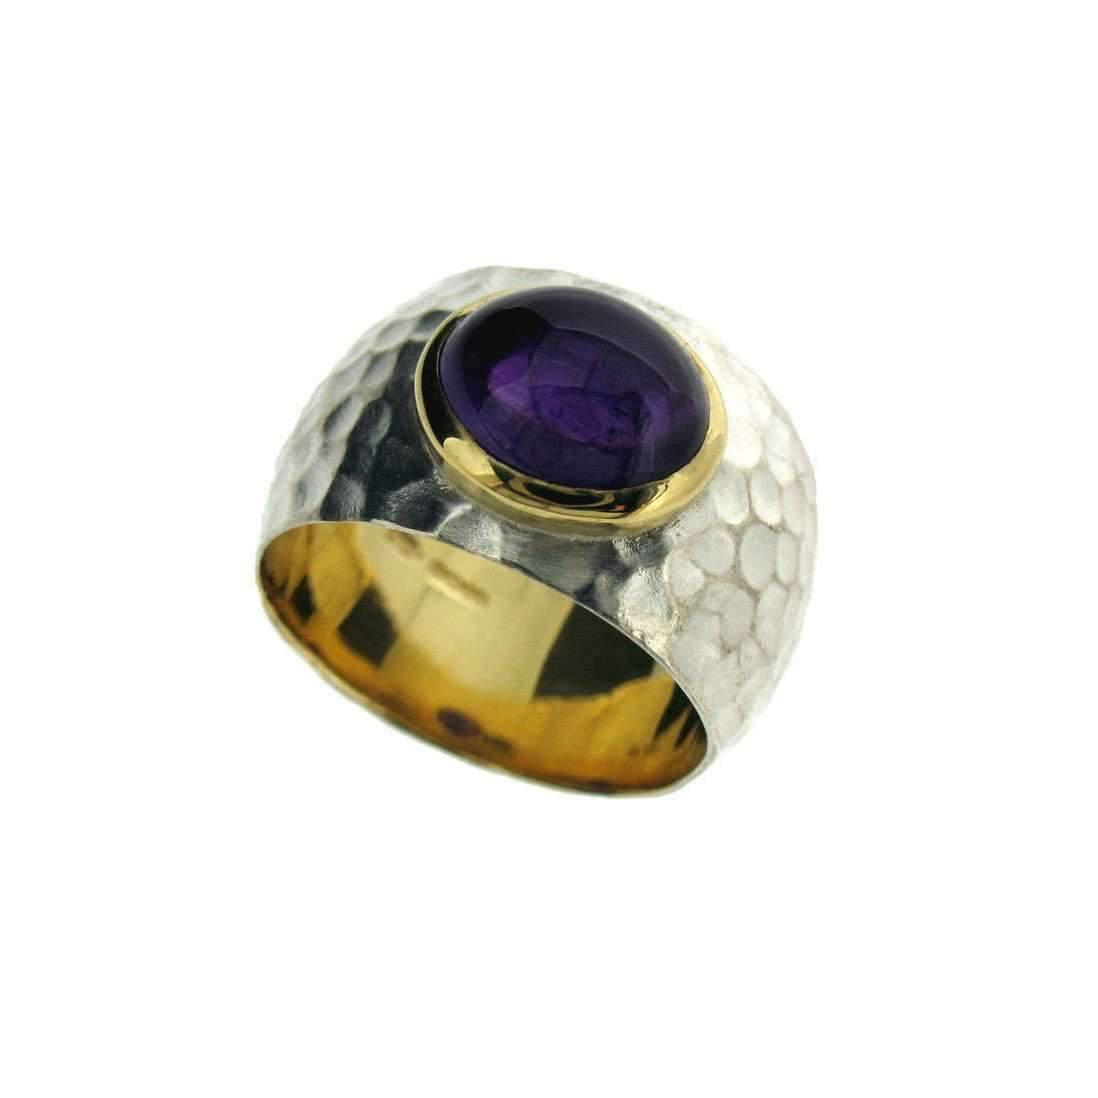 Will Bishop Gold Vermeil, Amethyst & Cubic Zirconia Three Band Ring - UK G - US 3 3/8 - EU 45 1/4